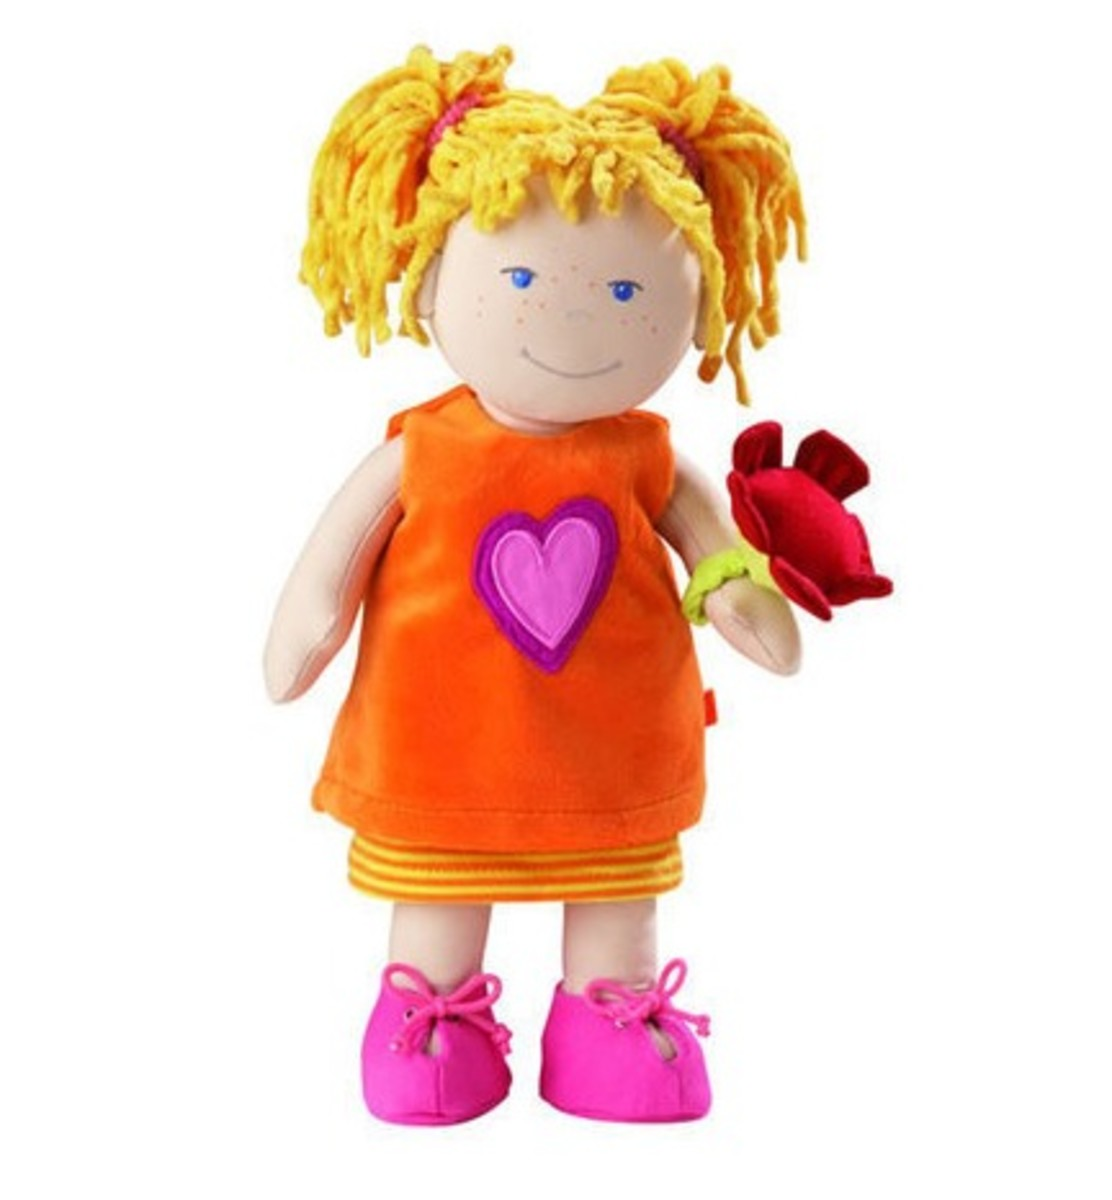 Haba Soft Doll